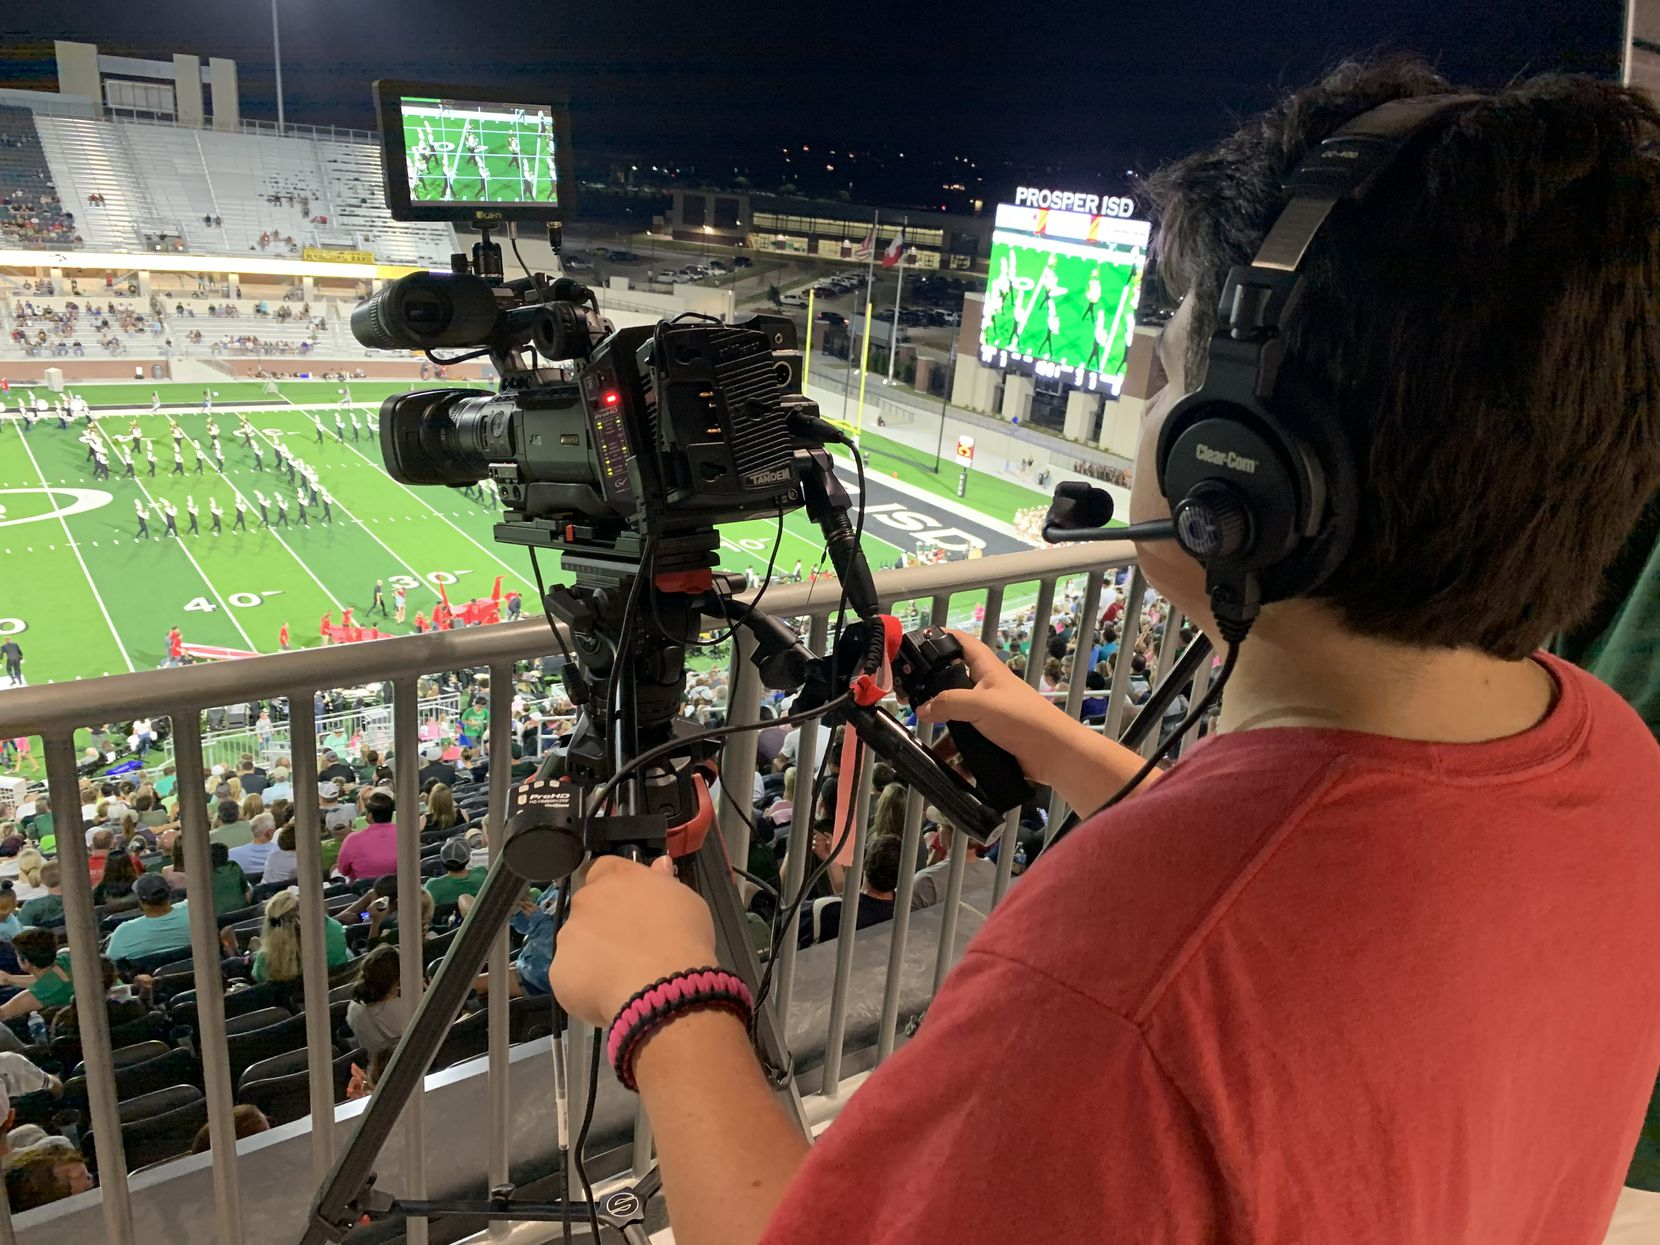 A crew of two adults and 14 students will run the live broadcast for Prosper ISD football games this season. The games will be live streamed on NFHS Network.